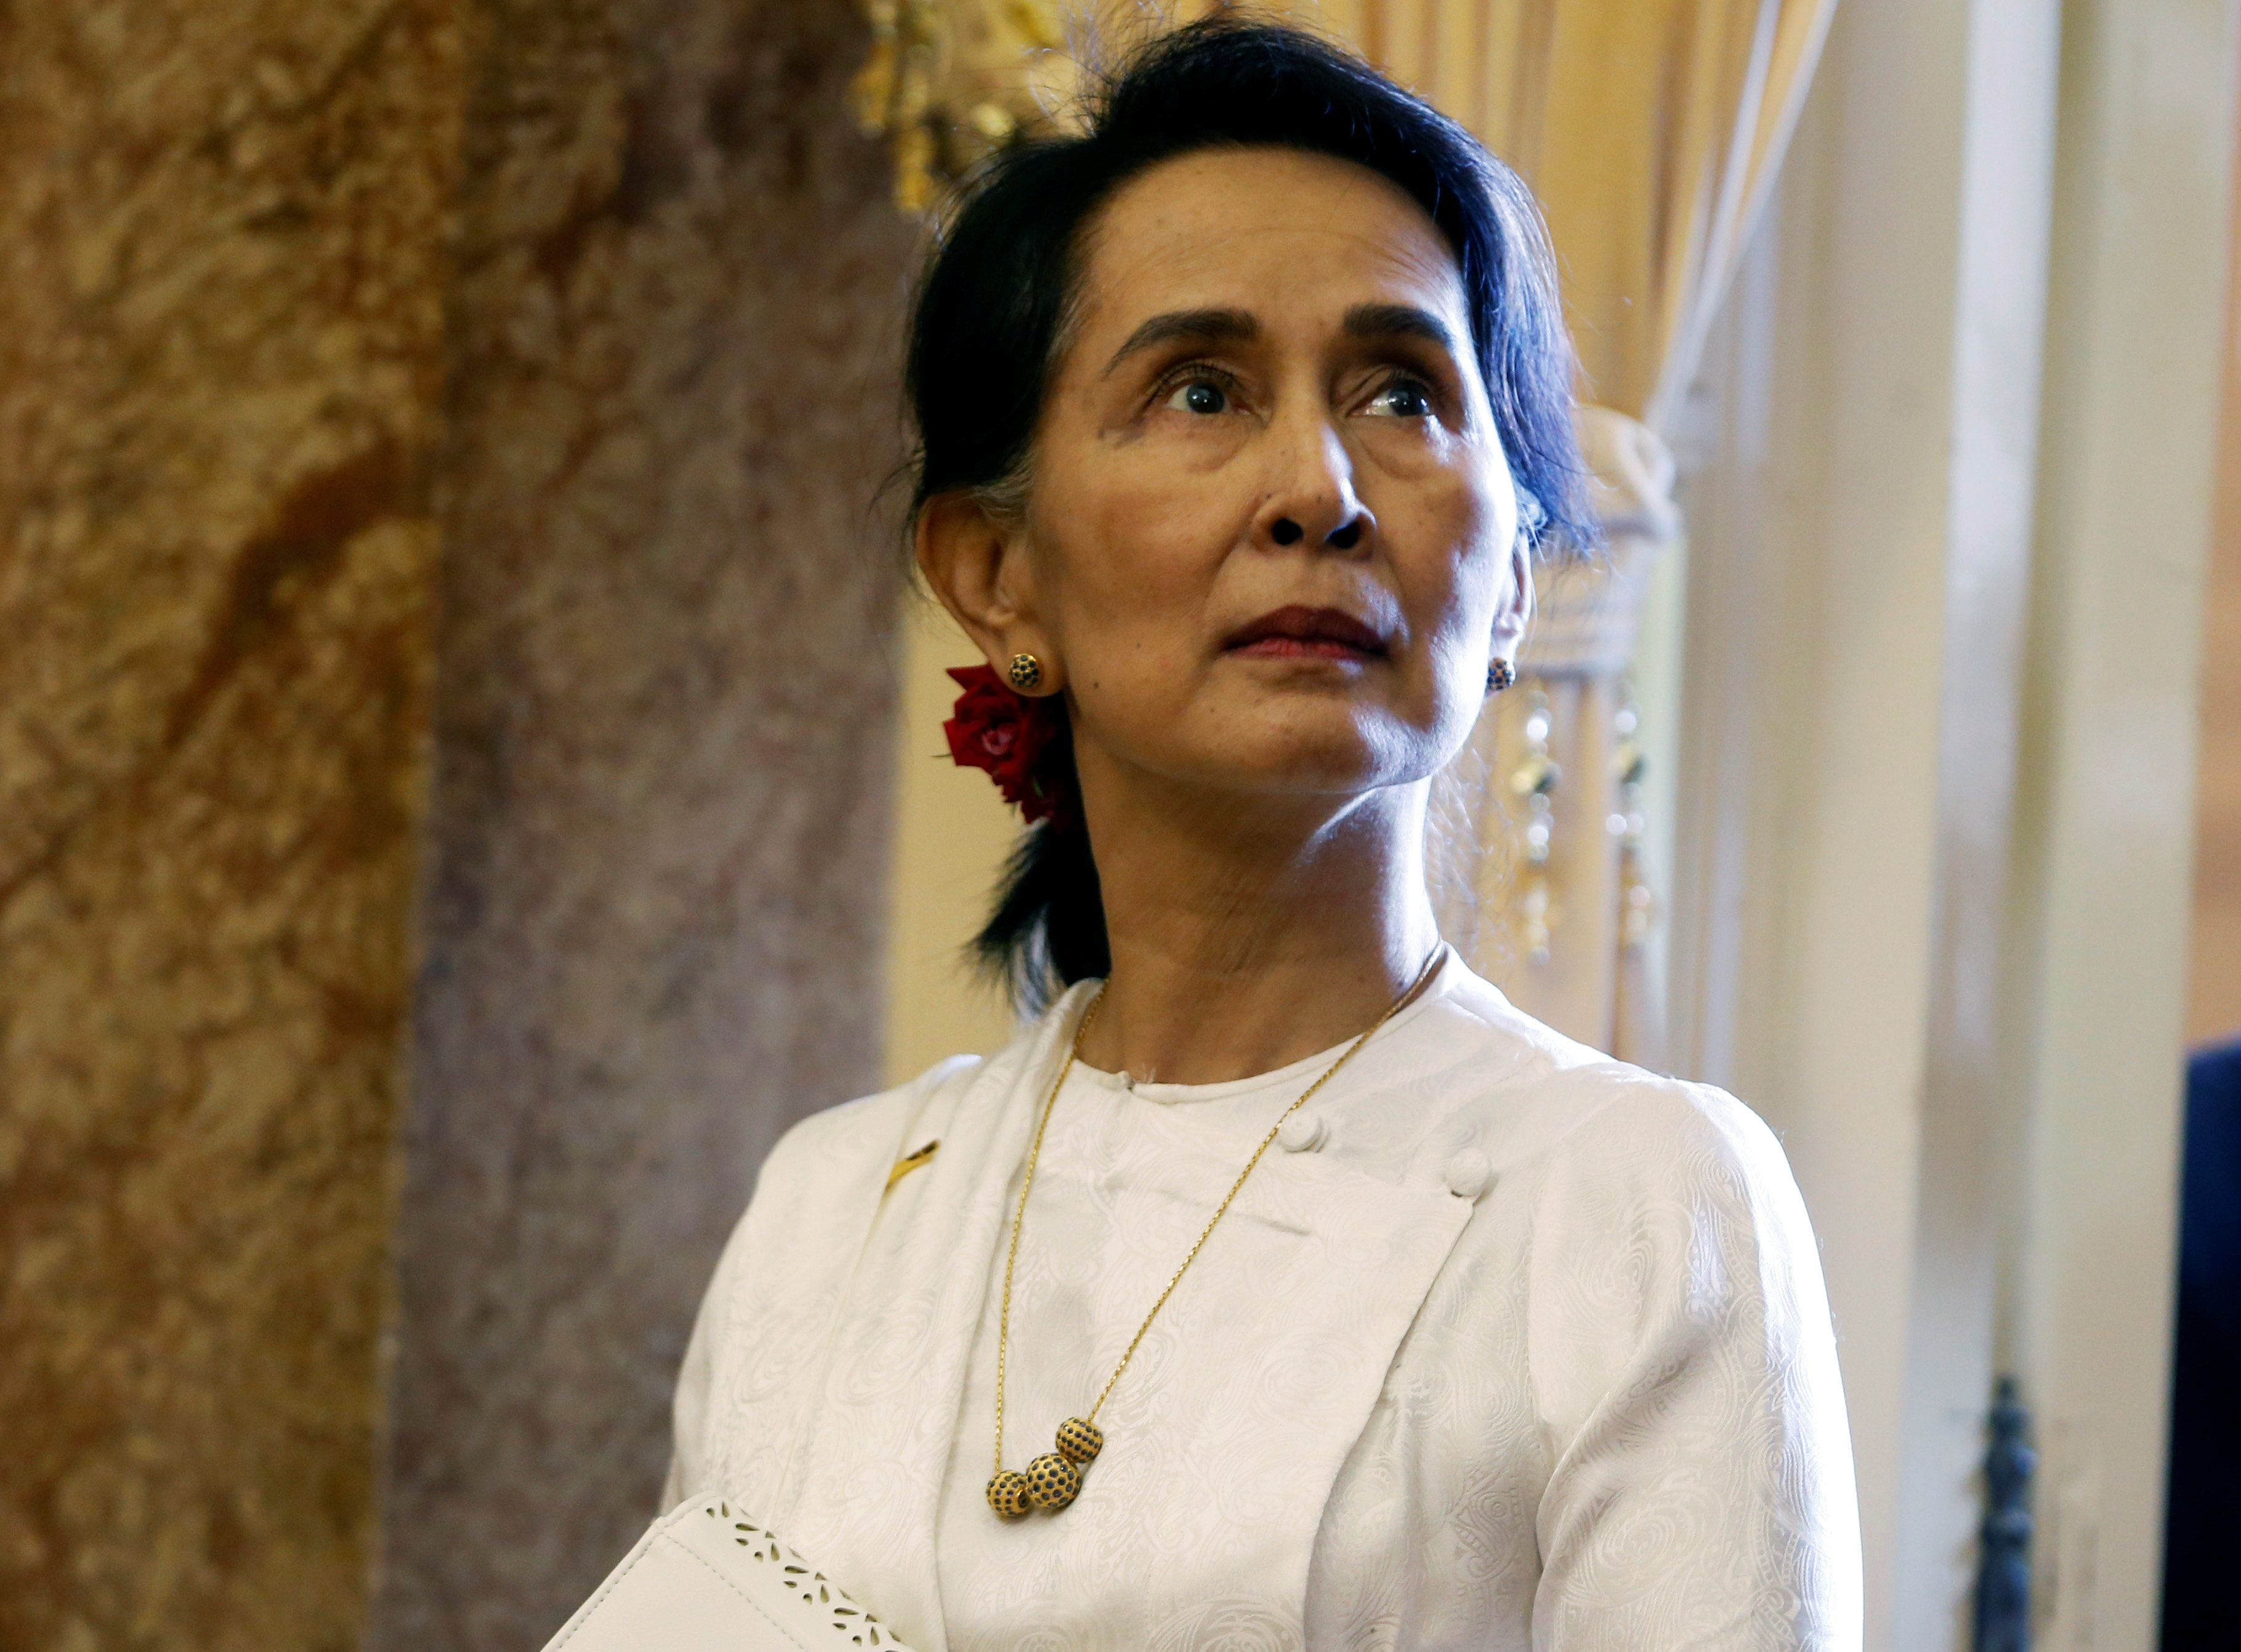 Myanmar's State Counsellor Aung San Suu Kyi  is seen while she waits for a meeting with Vietnam's President Tran Dai Quang (not pictured) at the Presidential Palace during the World Economic Forum on ASEAN in Hanoi, Vietnam September 13, 2018. REUTERS/Kham/Pool